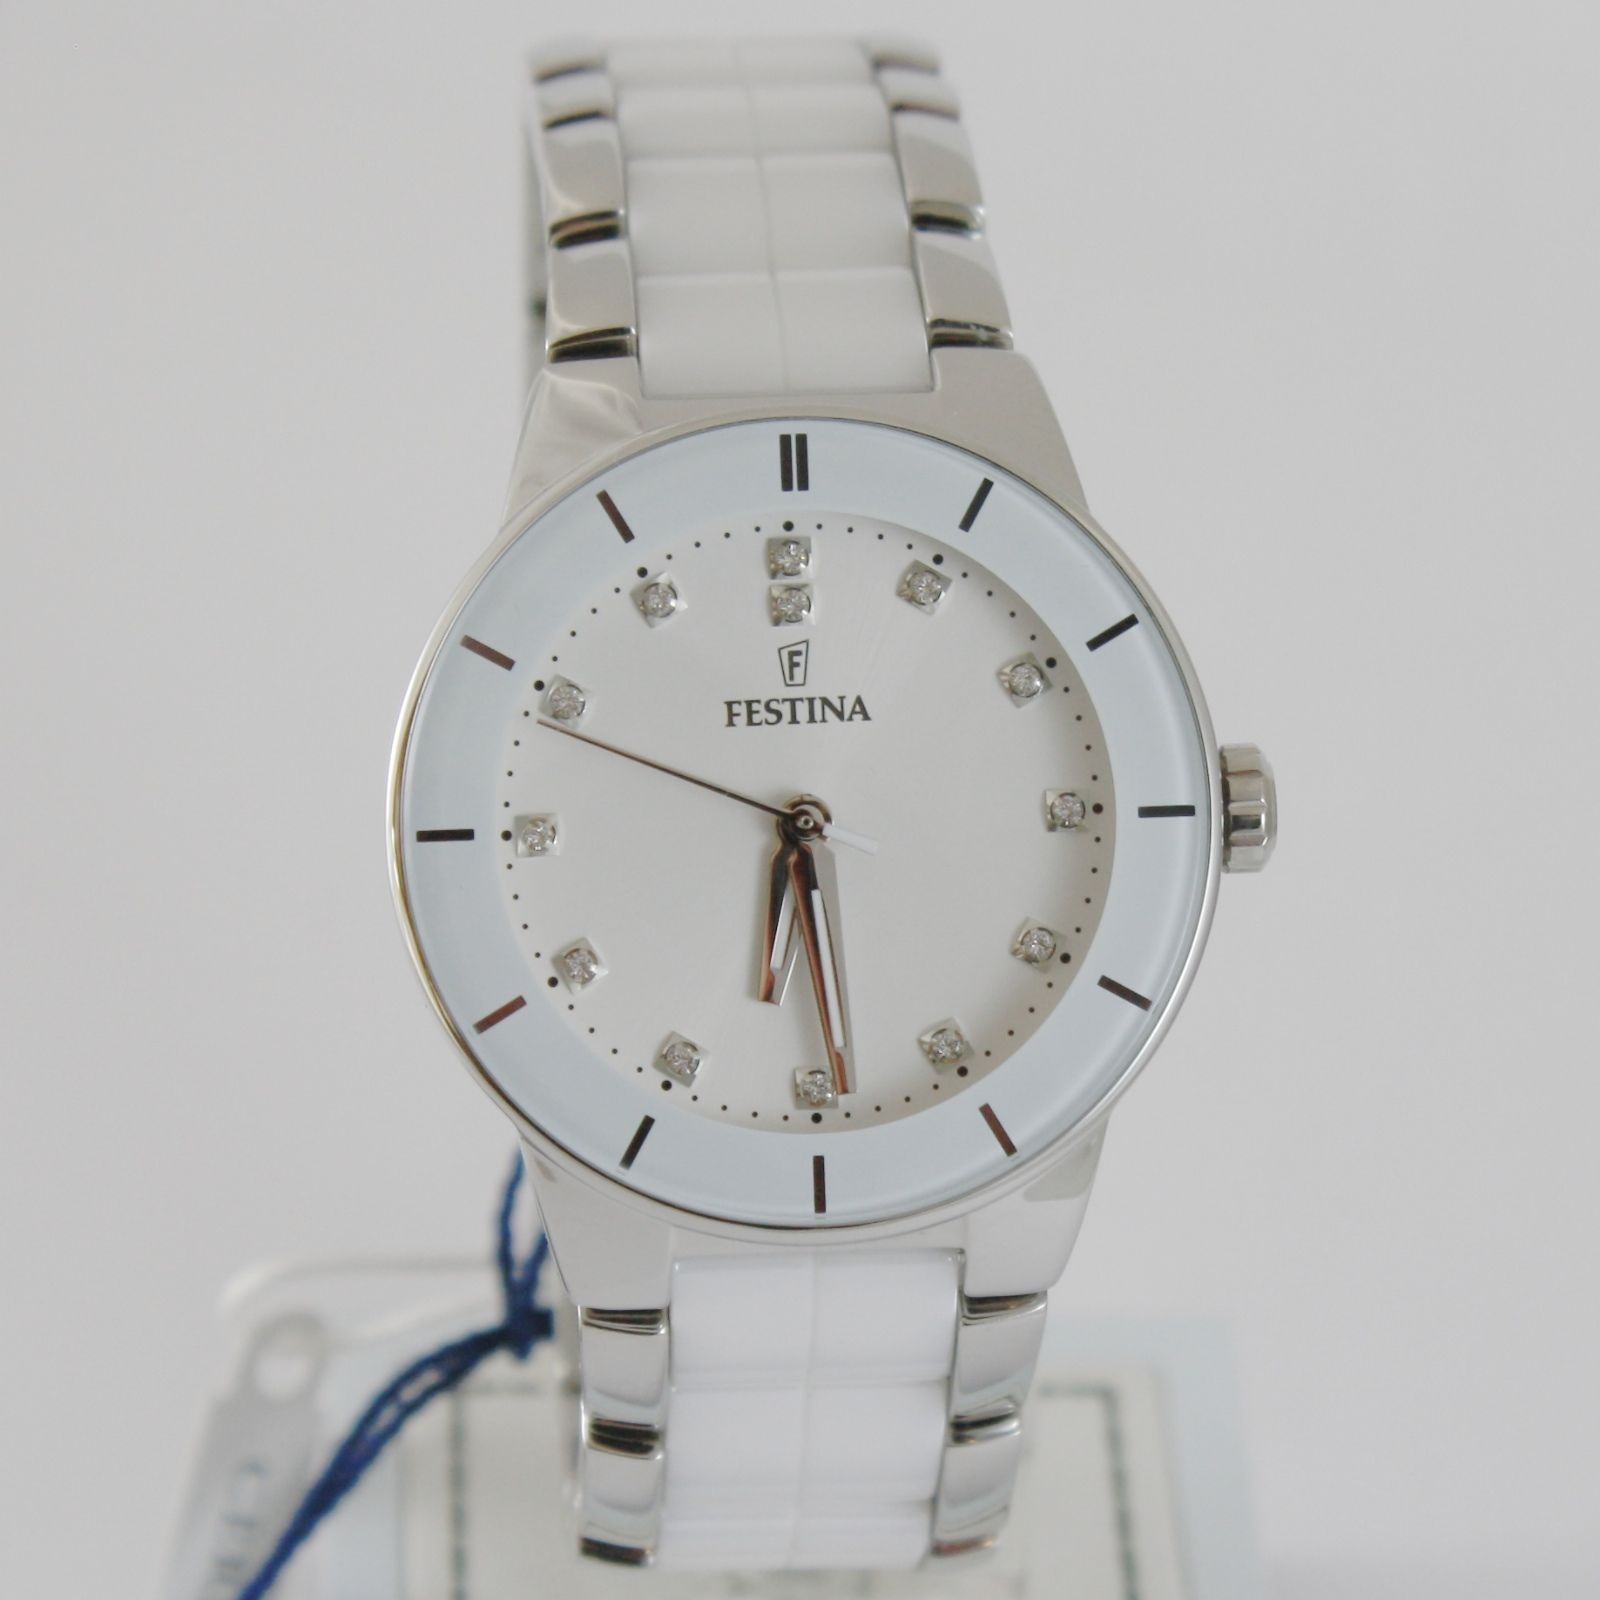 FESTINA WATCH QUARTZ MOVEMENT 35 MM CASE 5 ATM WHITE FACE WHITE CERAMIC ZIRCONIA